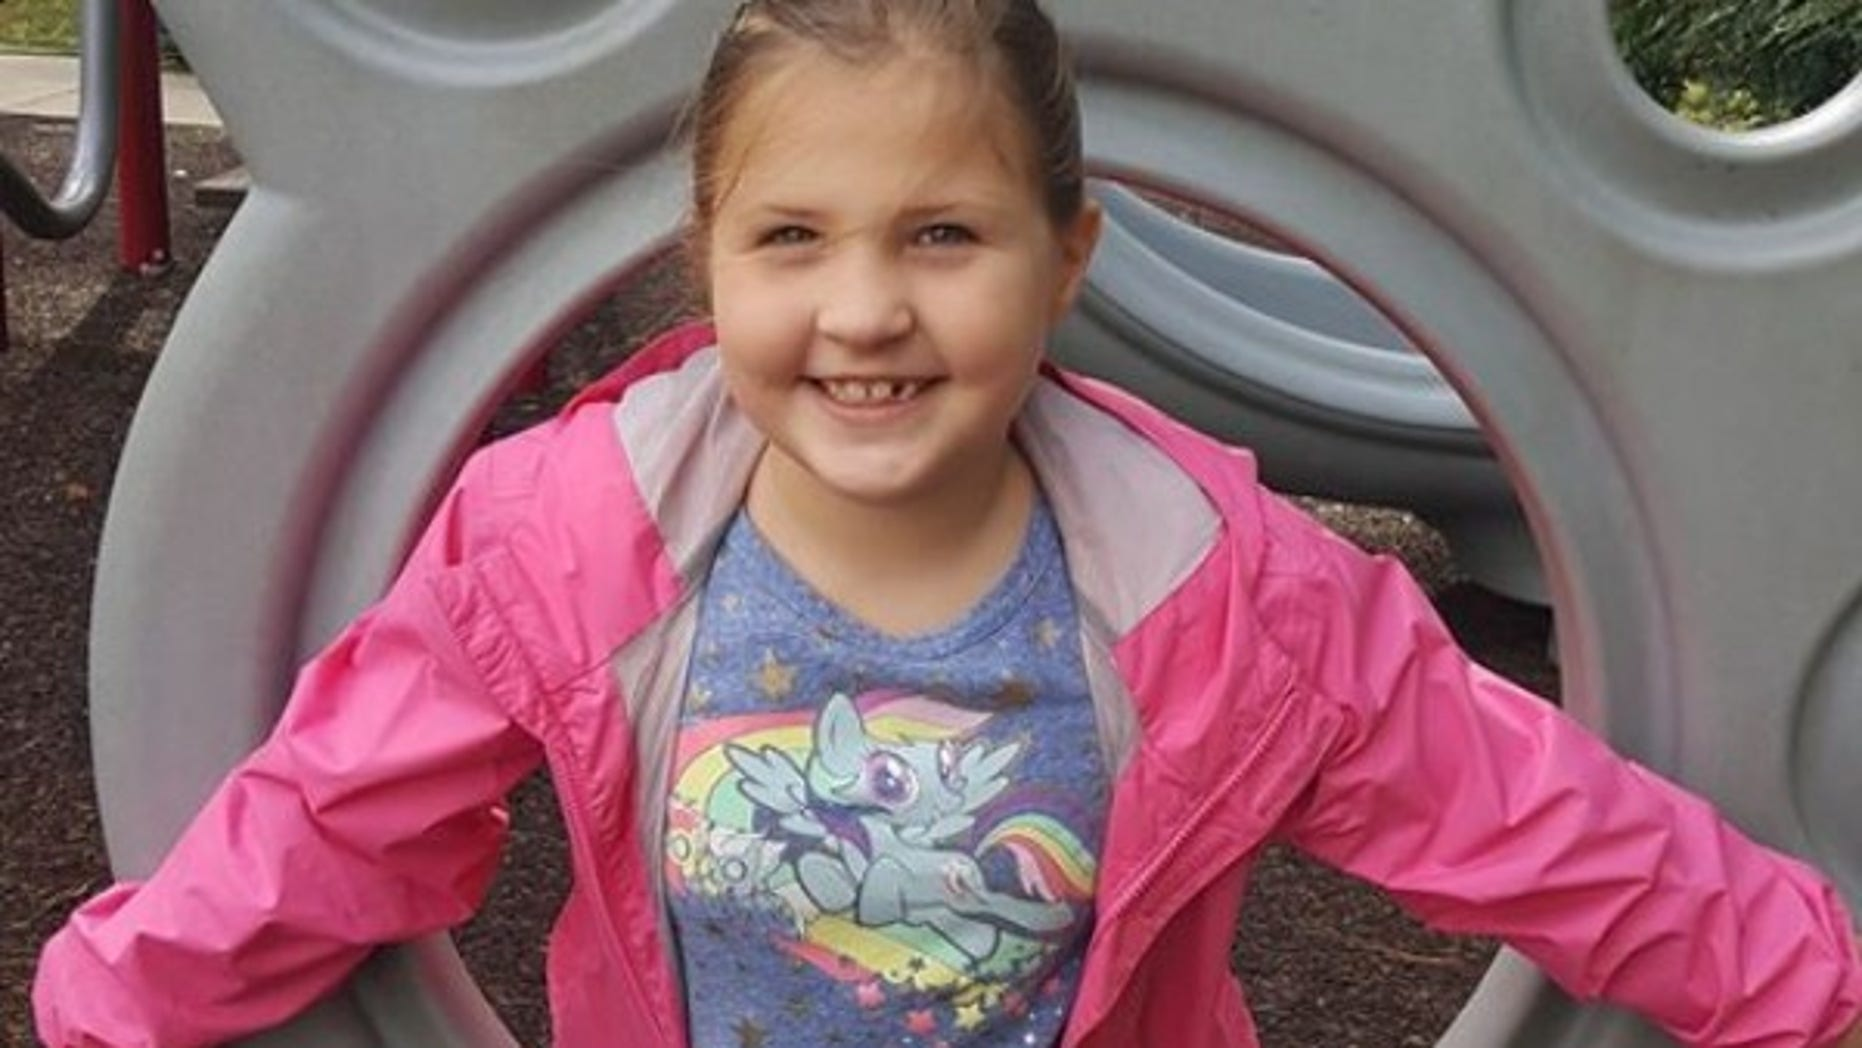 Emily Muth had not received a flu shot this year, her parents said.